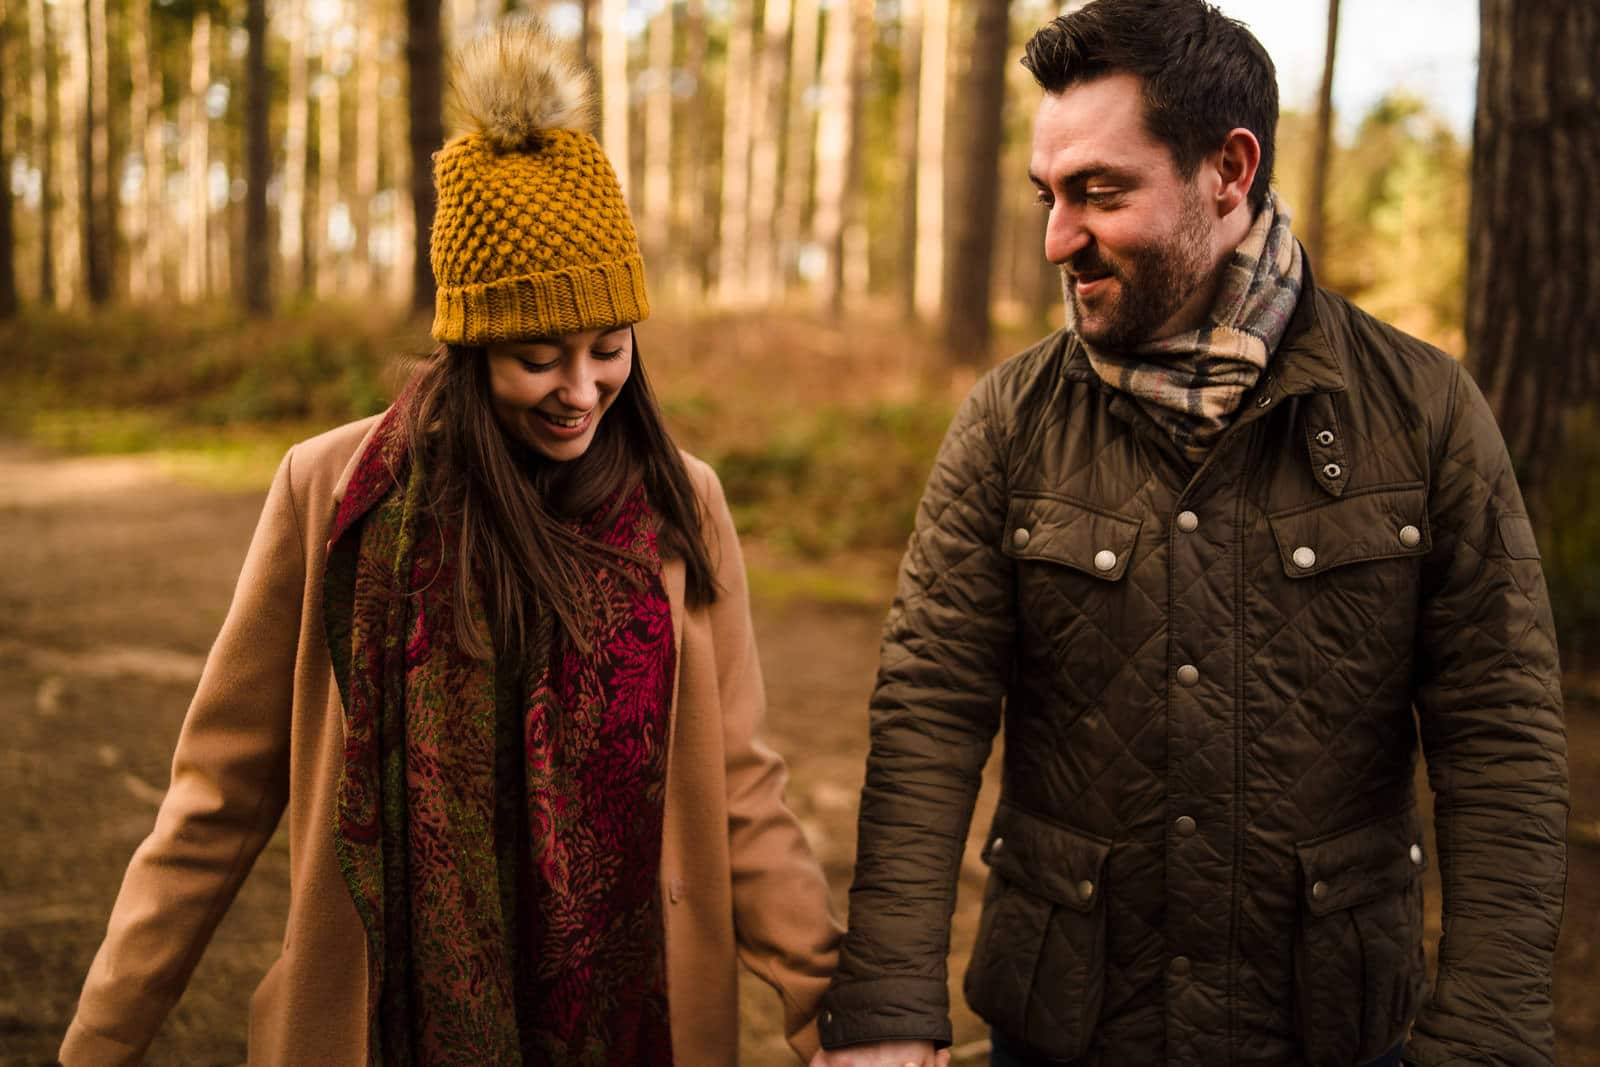 Engagement photography at harlestone firs forest walk